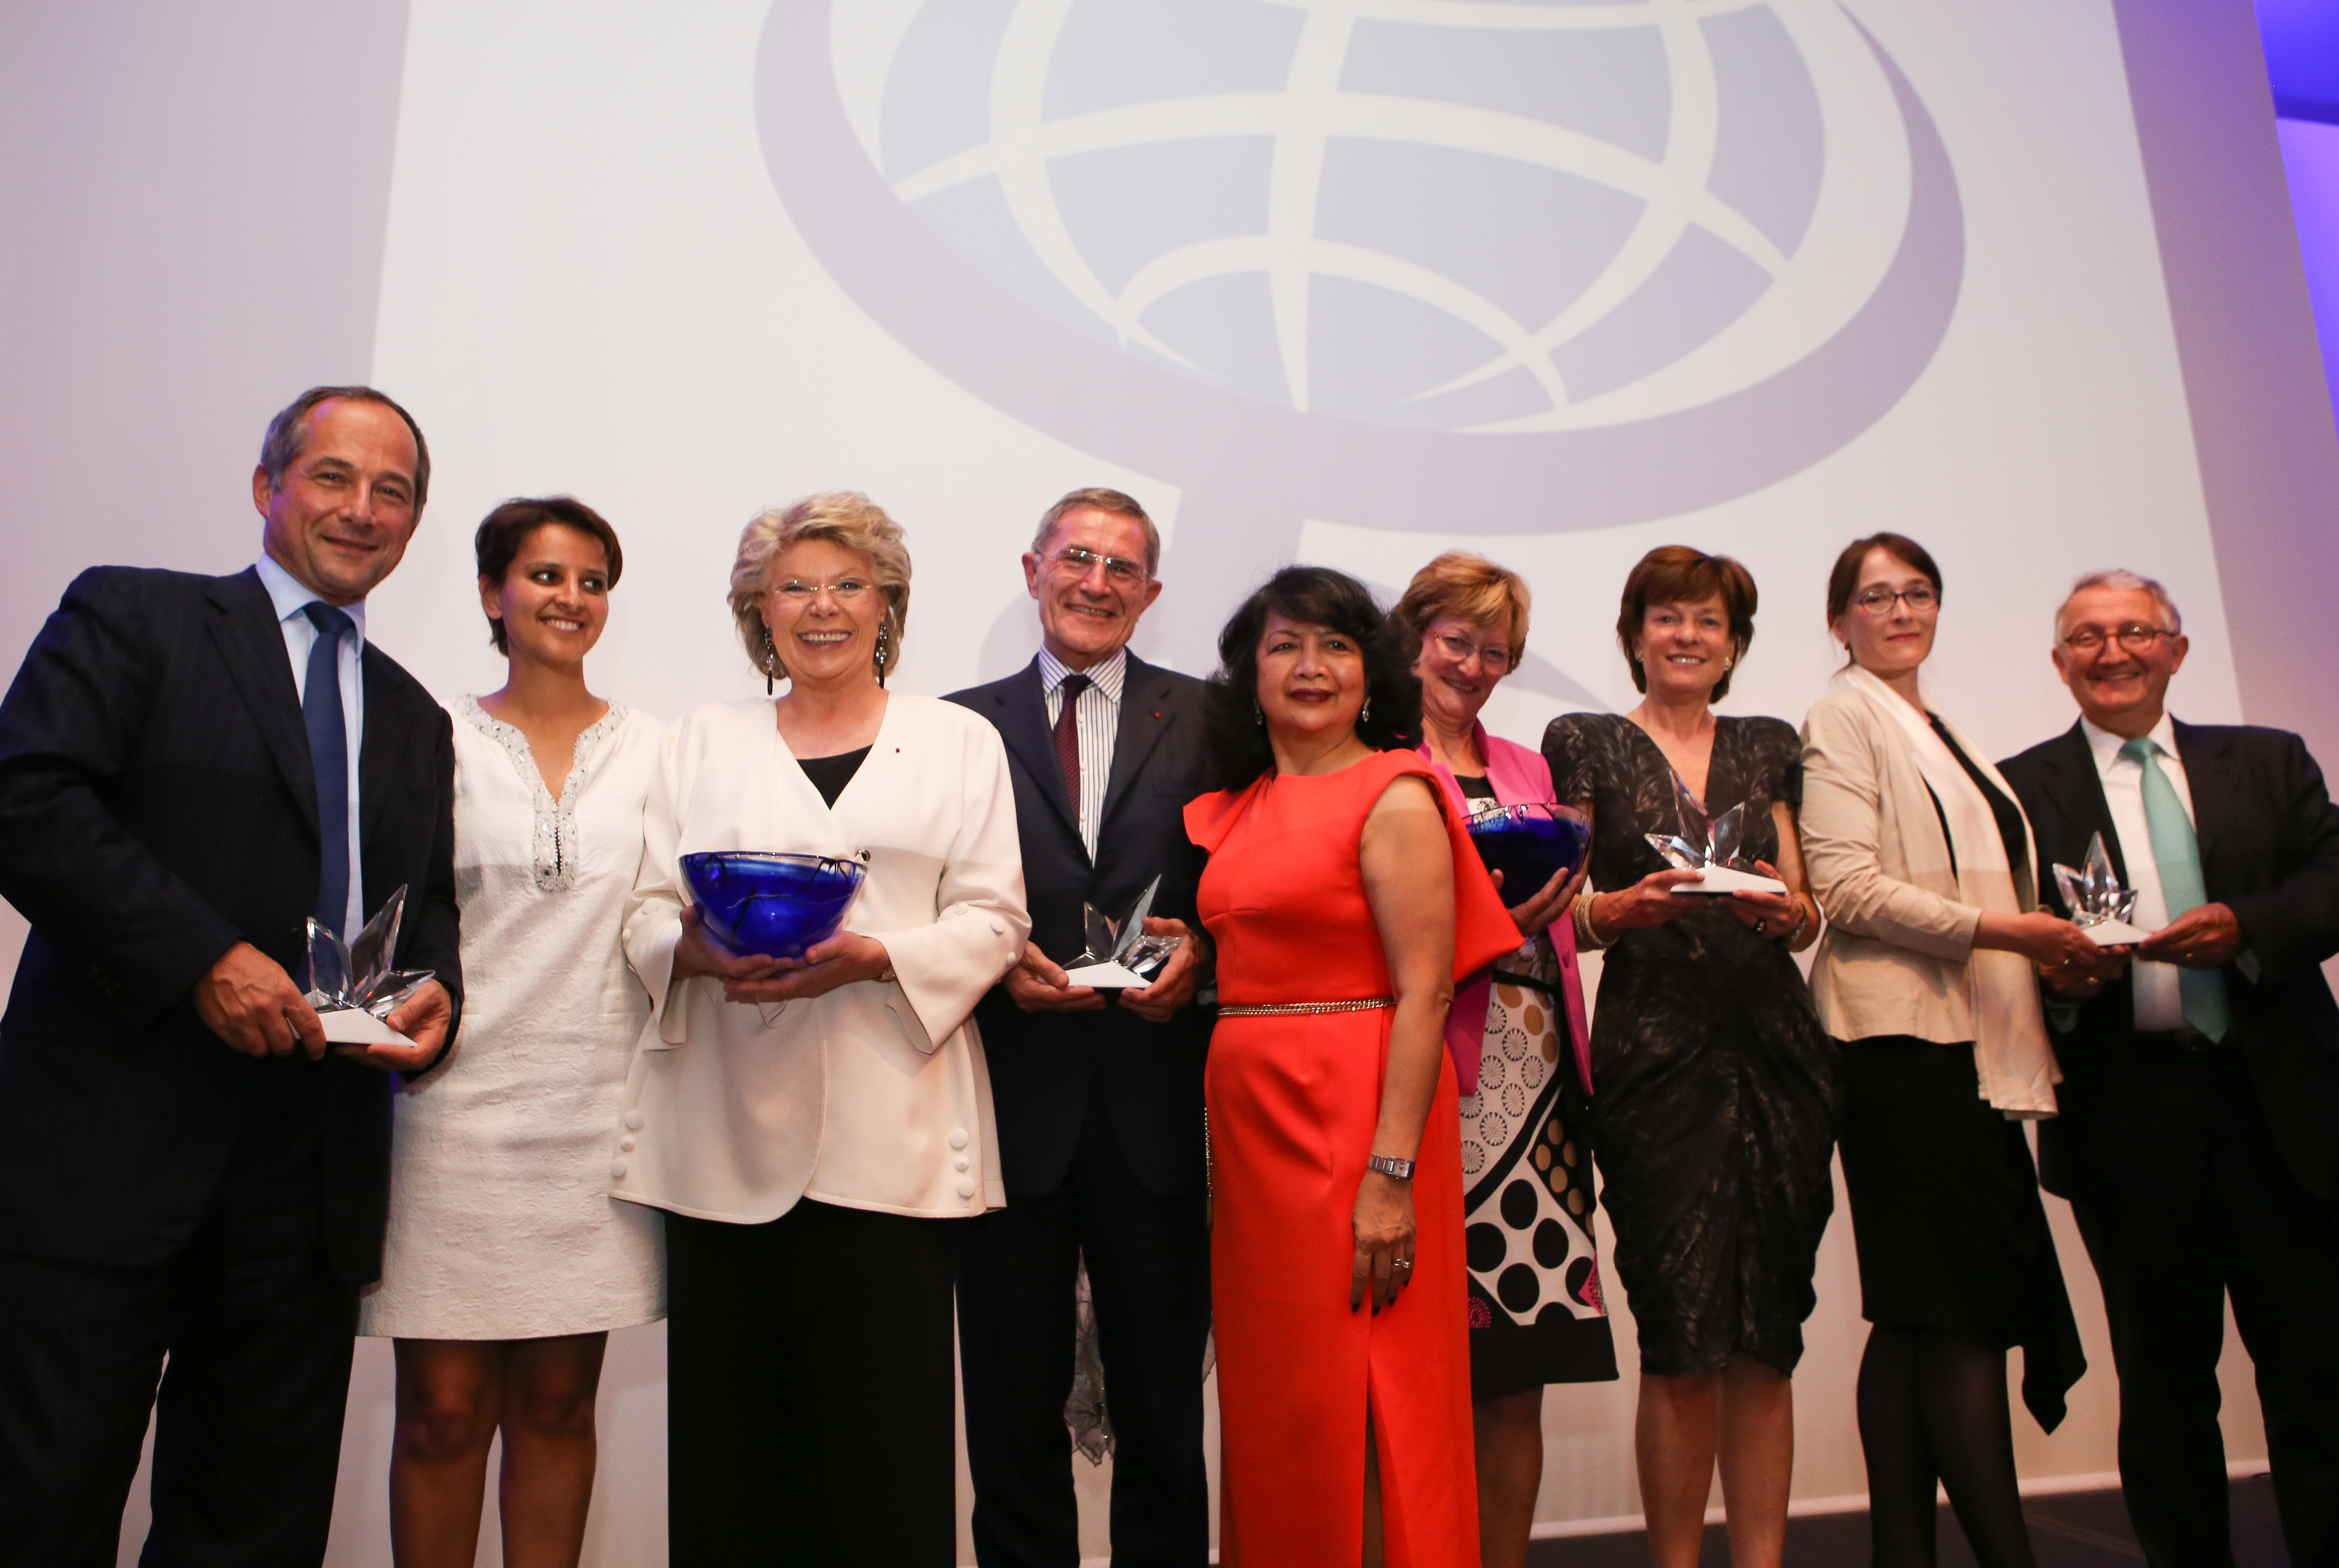 Viviane Reding Global Summit of Women Award